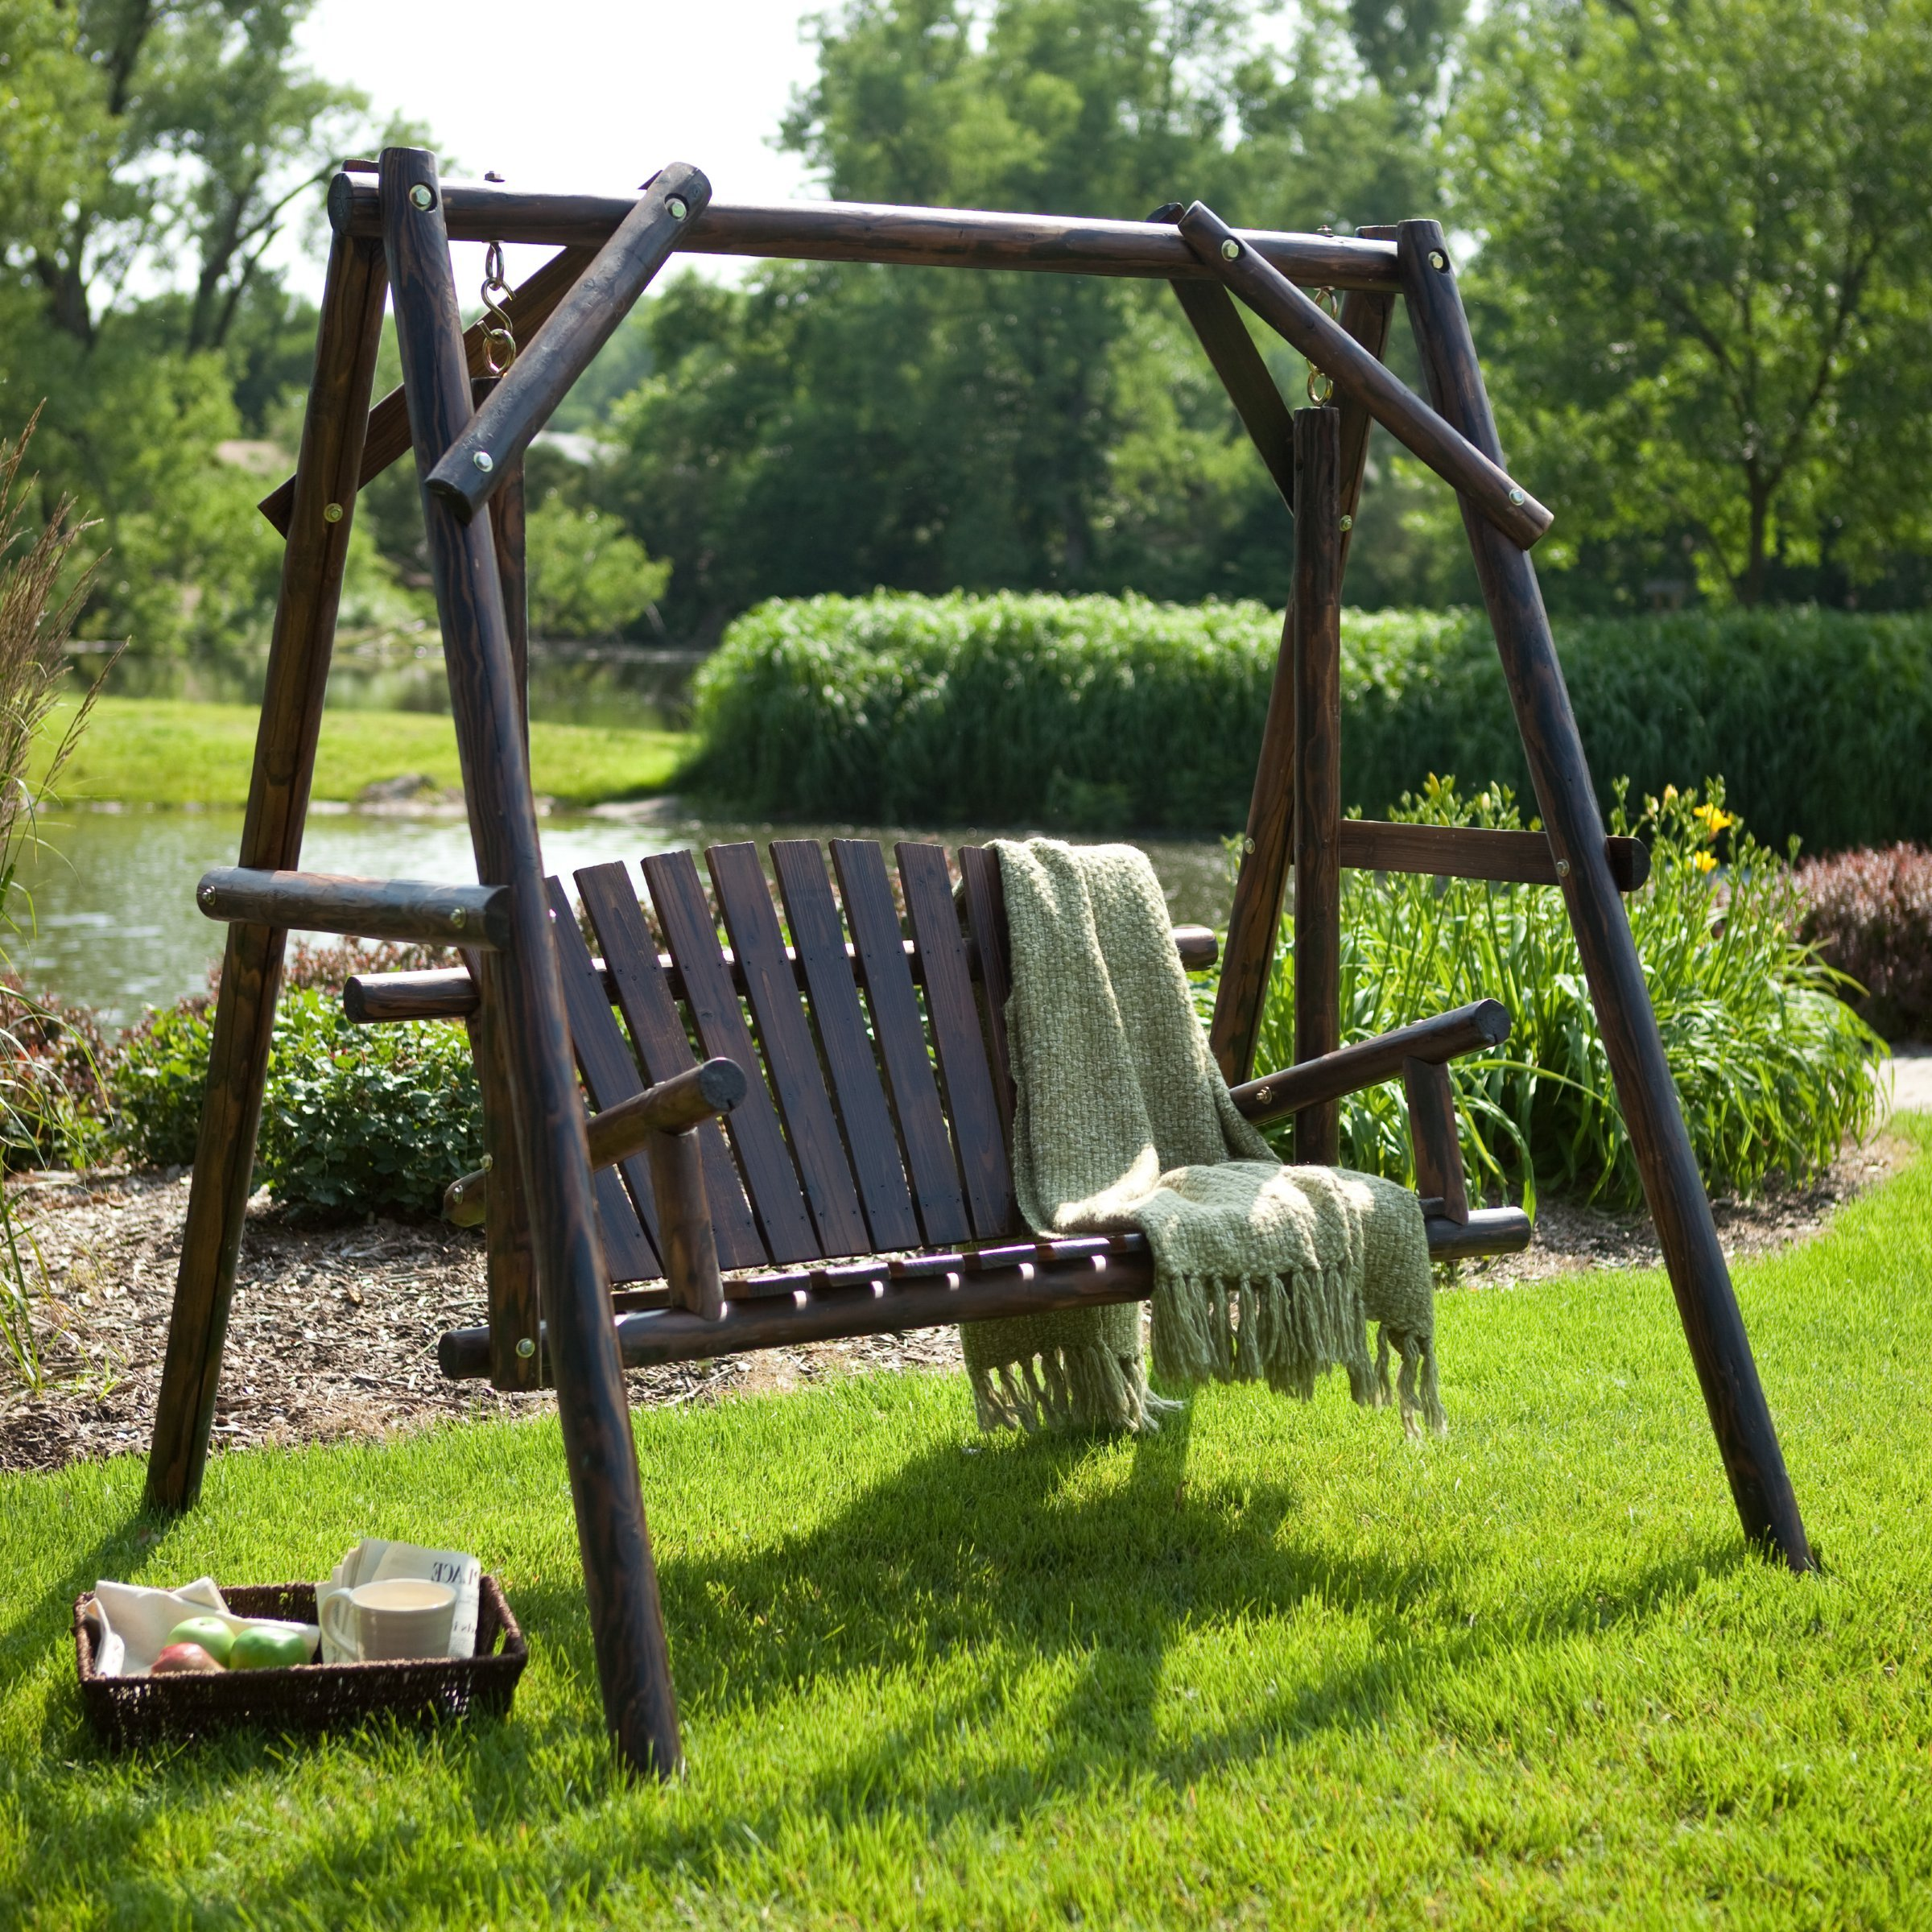 Cheap Build Wooden Swing Set Frame, find Build Wooden Swing Set ...